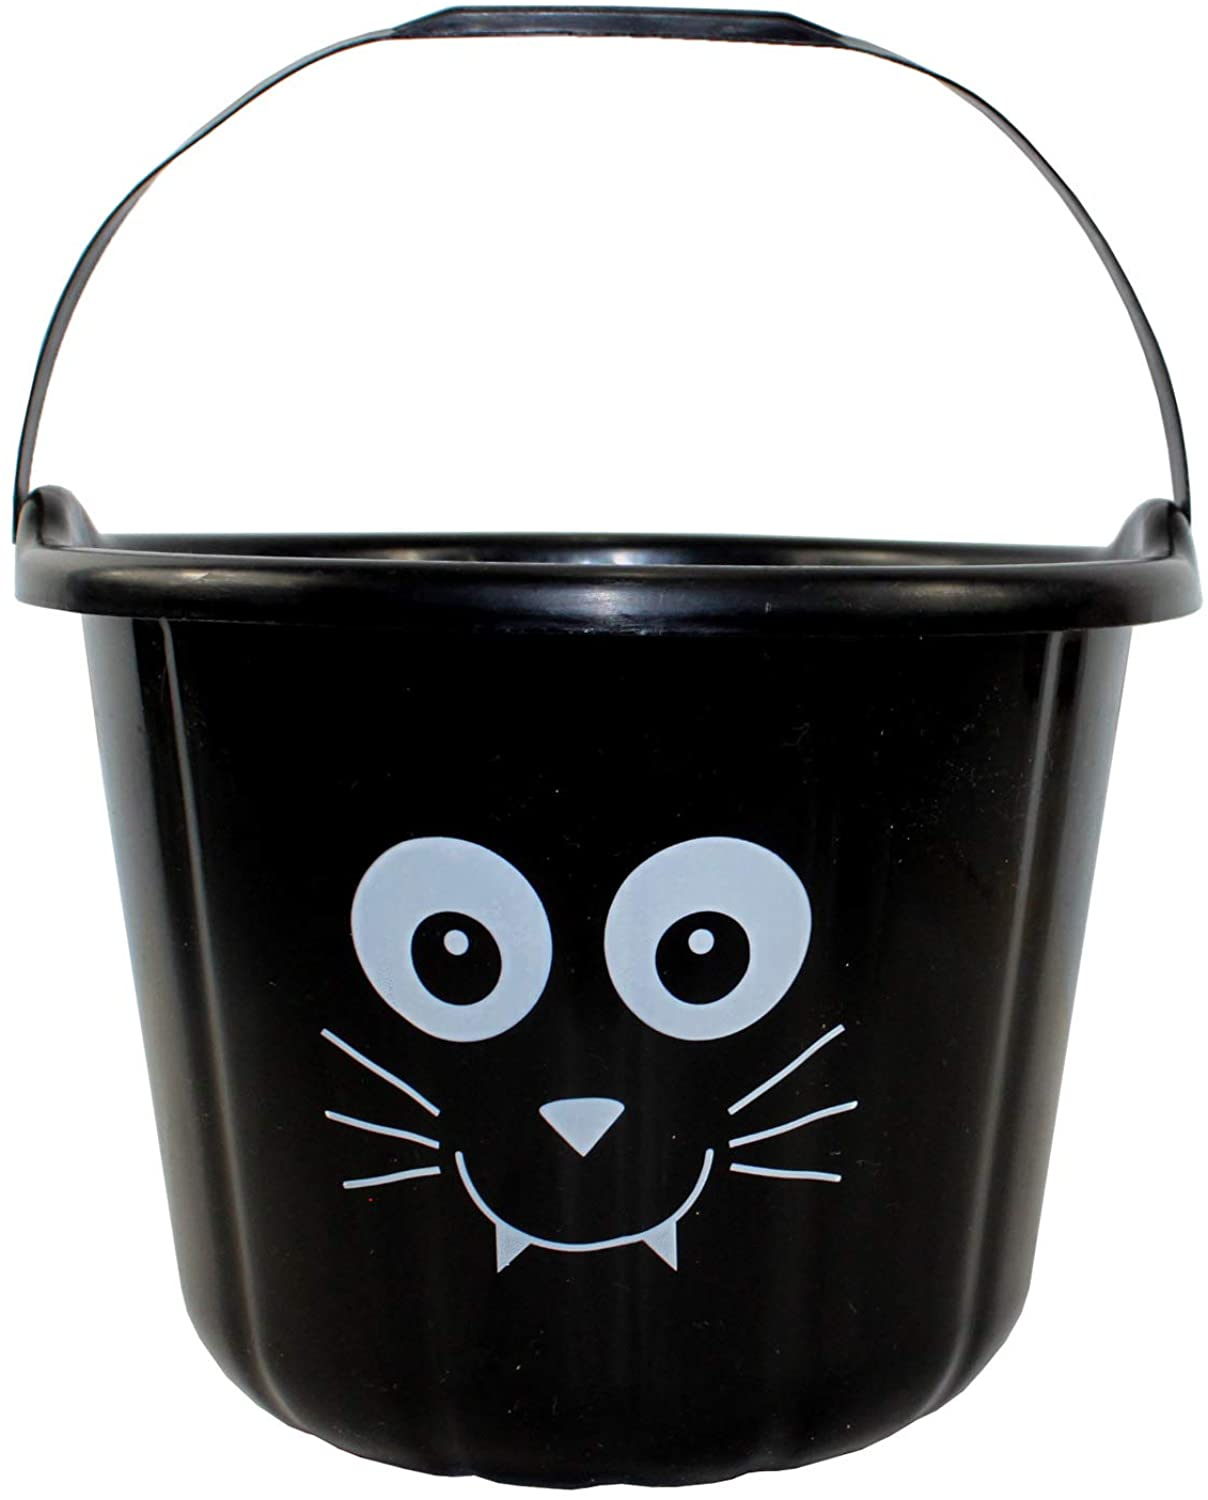 Black Trick OR Treat Bucket with CAT FACE